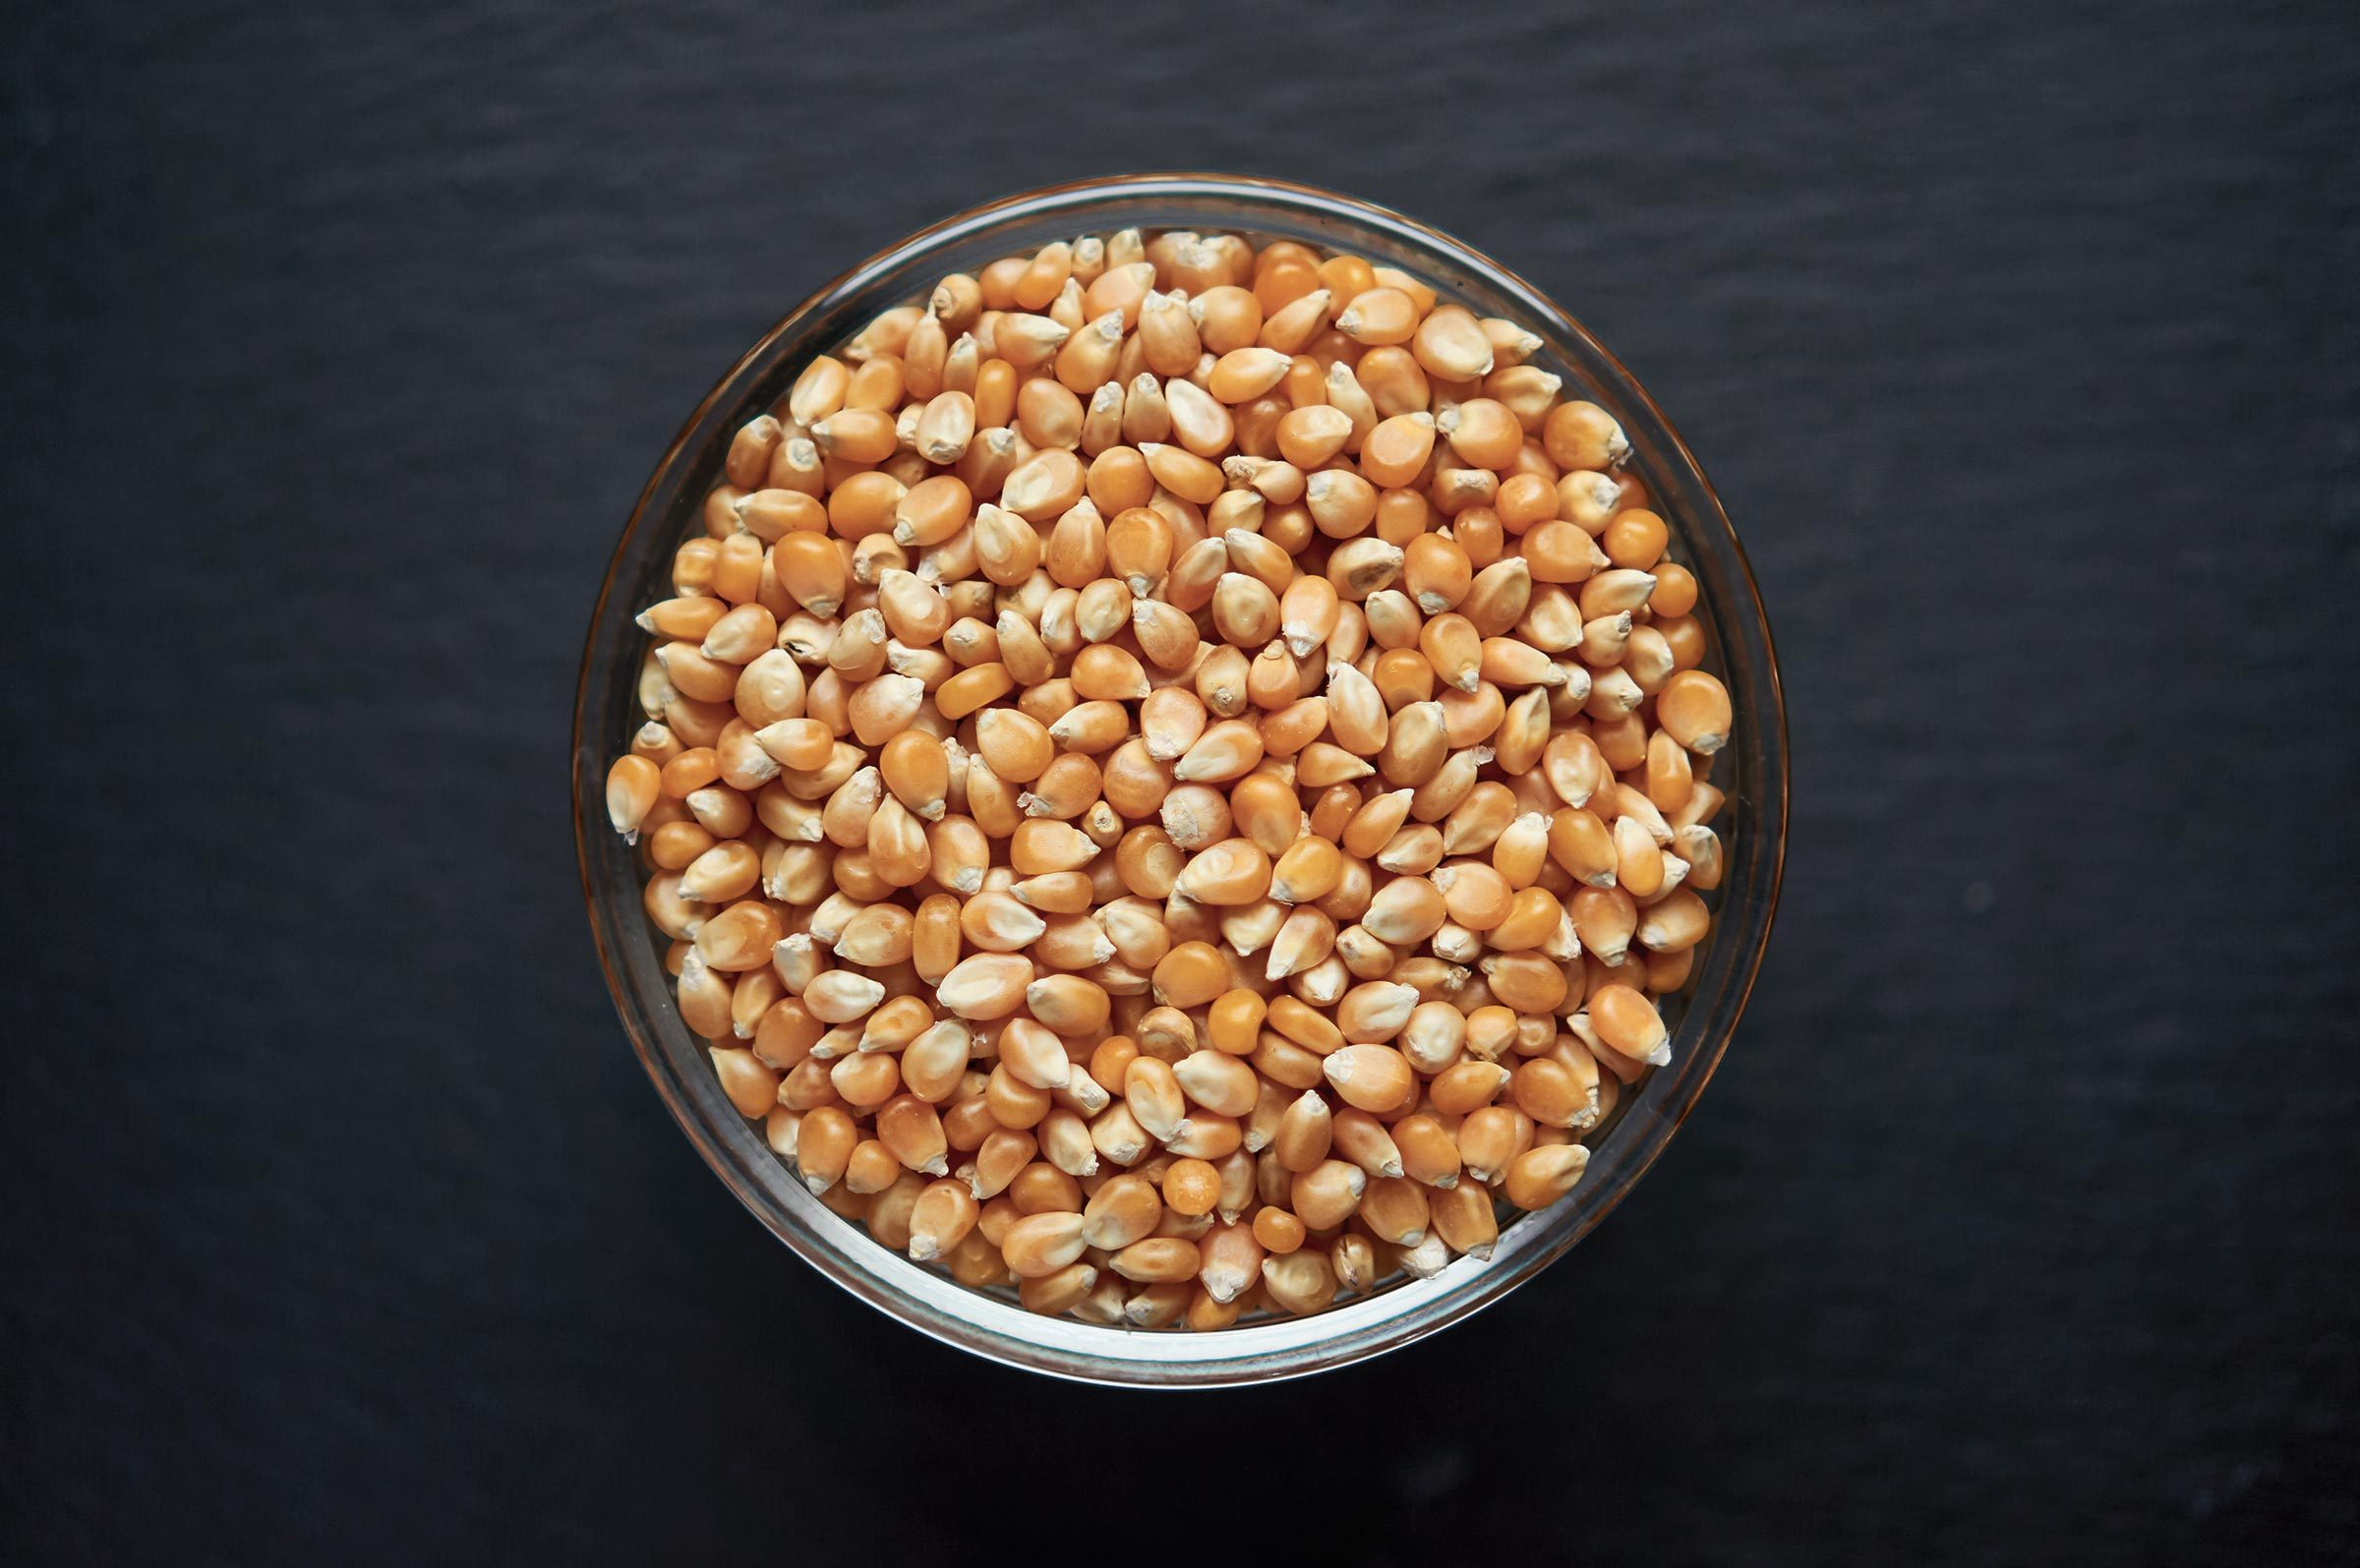 Corn kernels in a bowl on dark background